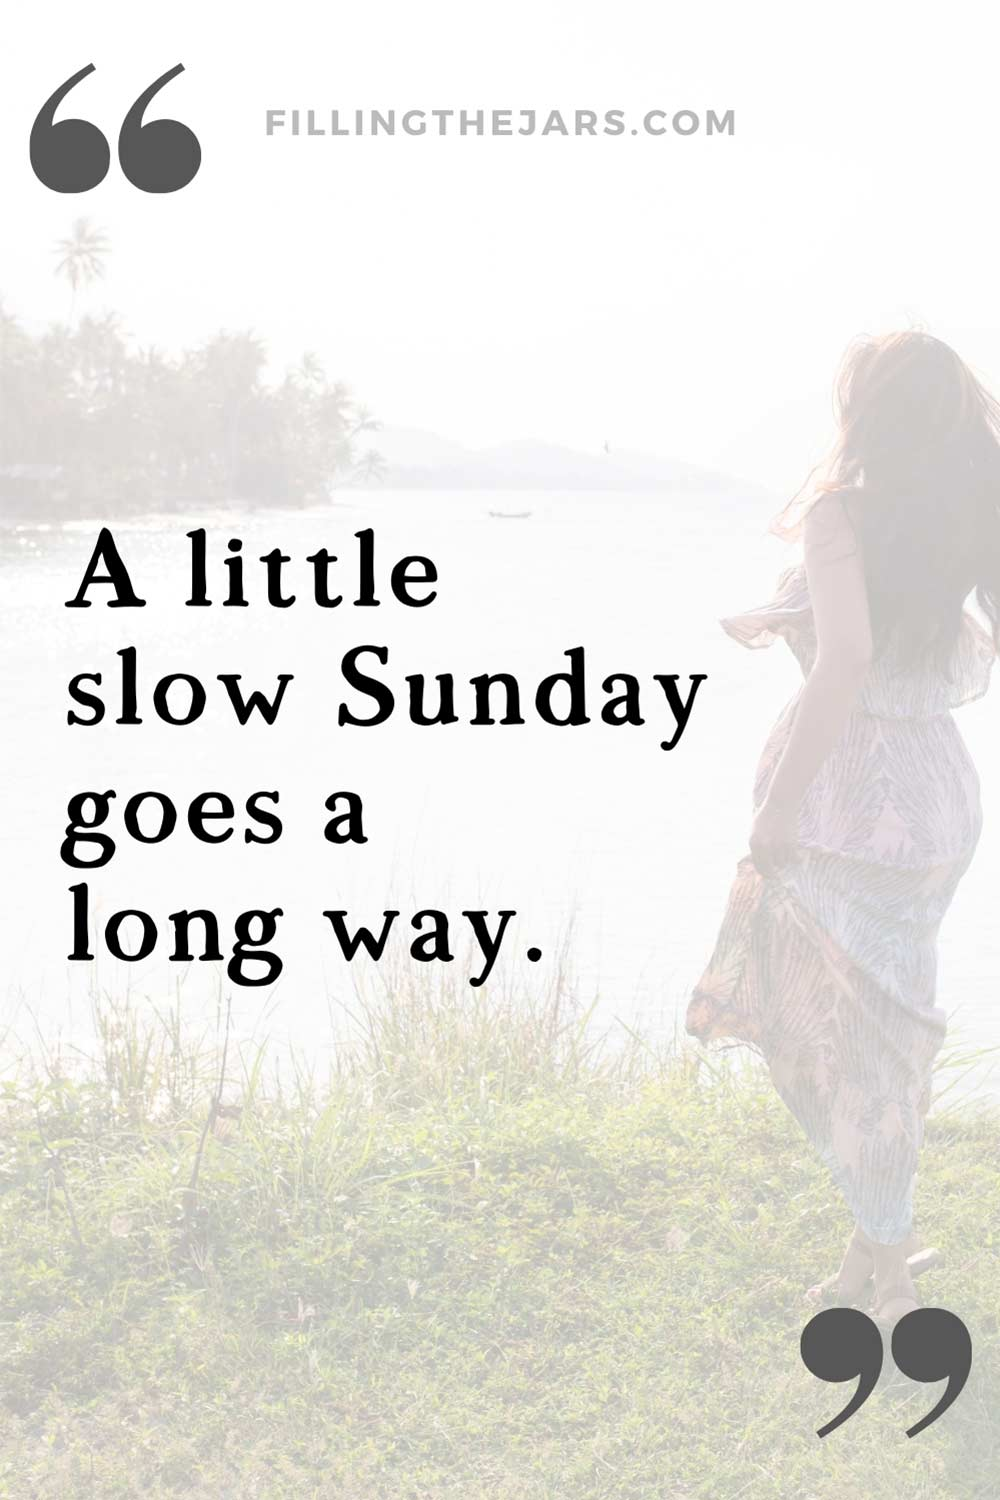 Slow Sunday quote in black text over image of woman standing on a grassy shore with the breeze blowing her long hair and dress.